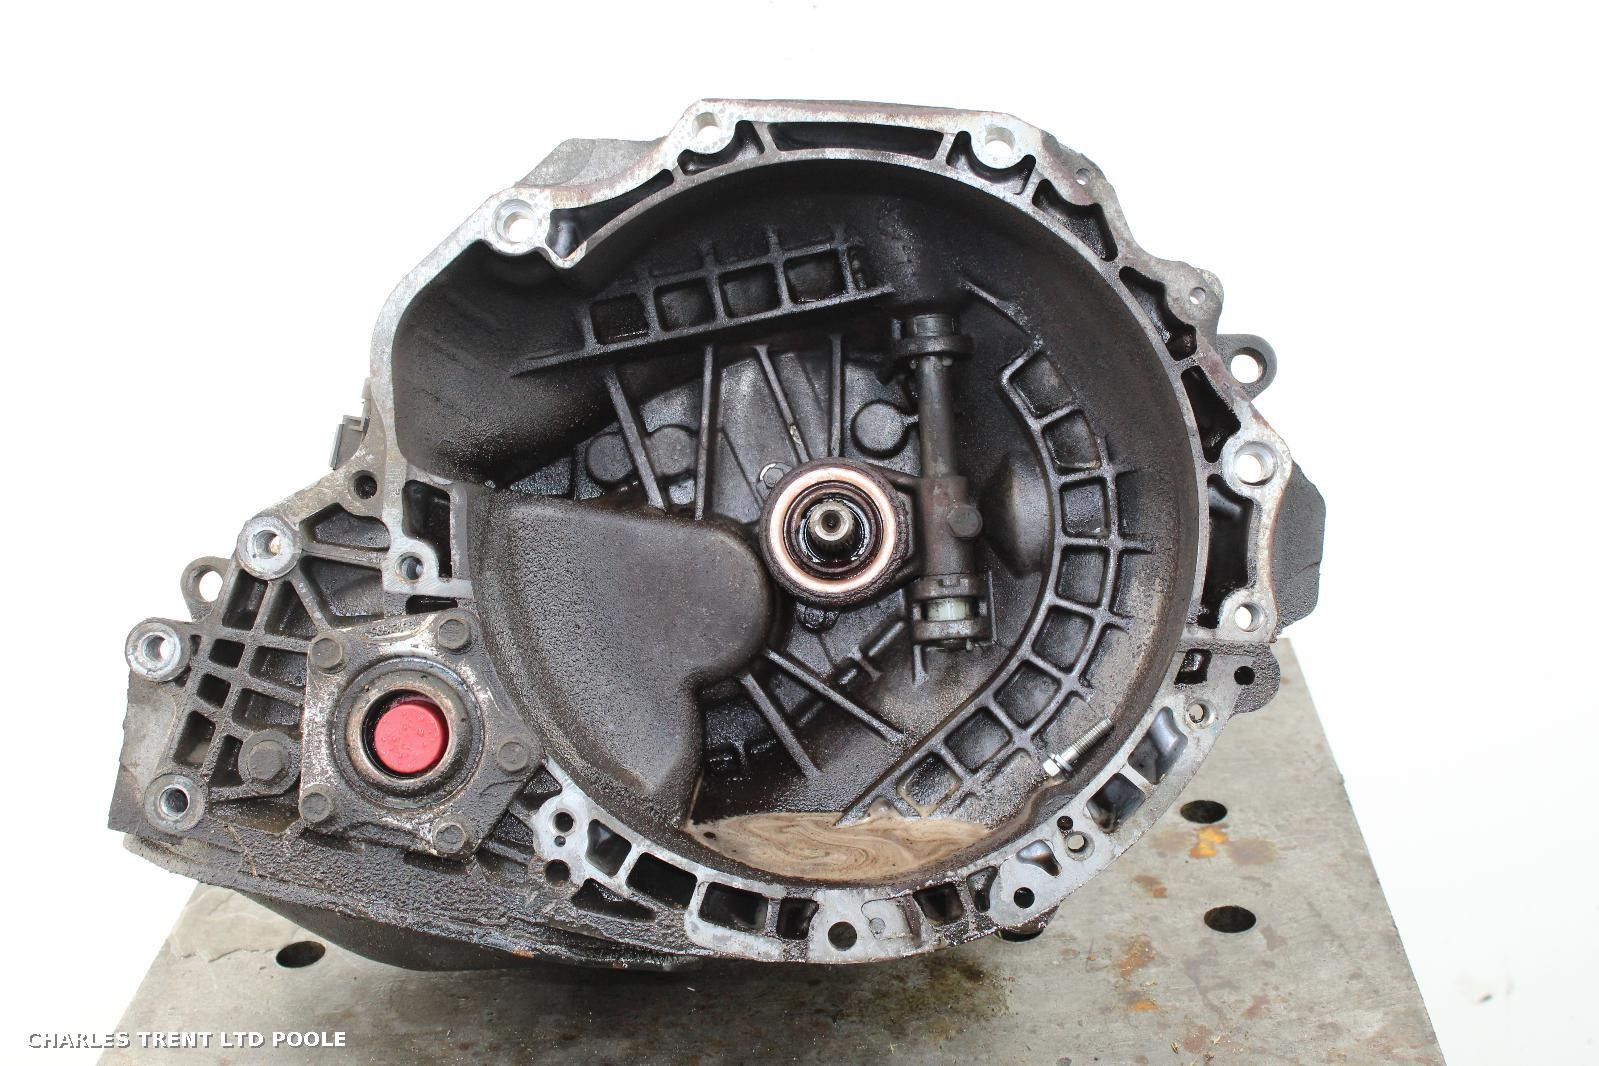 2009 - CHEVROLET - AVEO - GEARBOX / TRANSMISSION